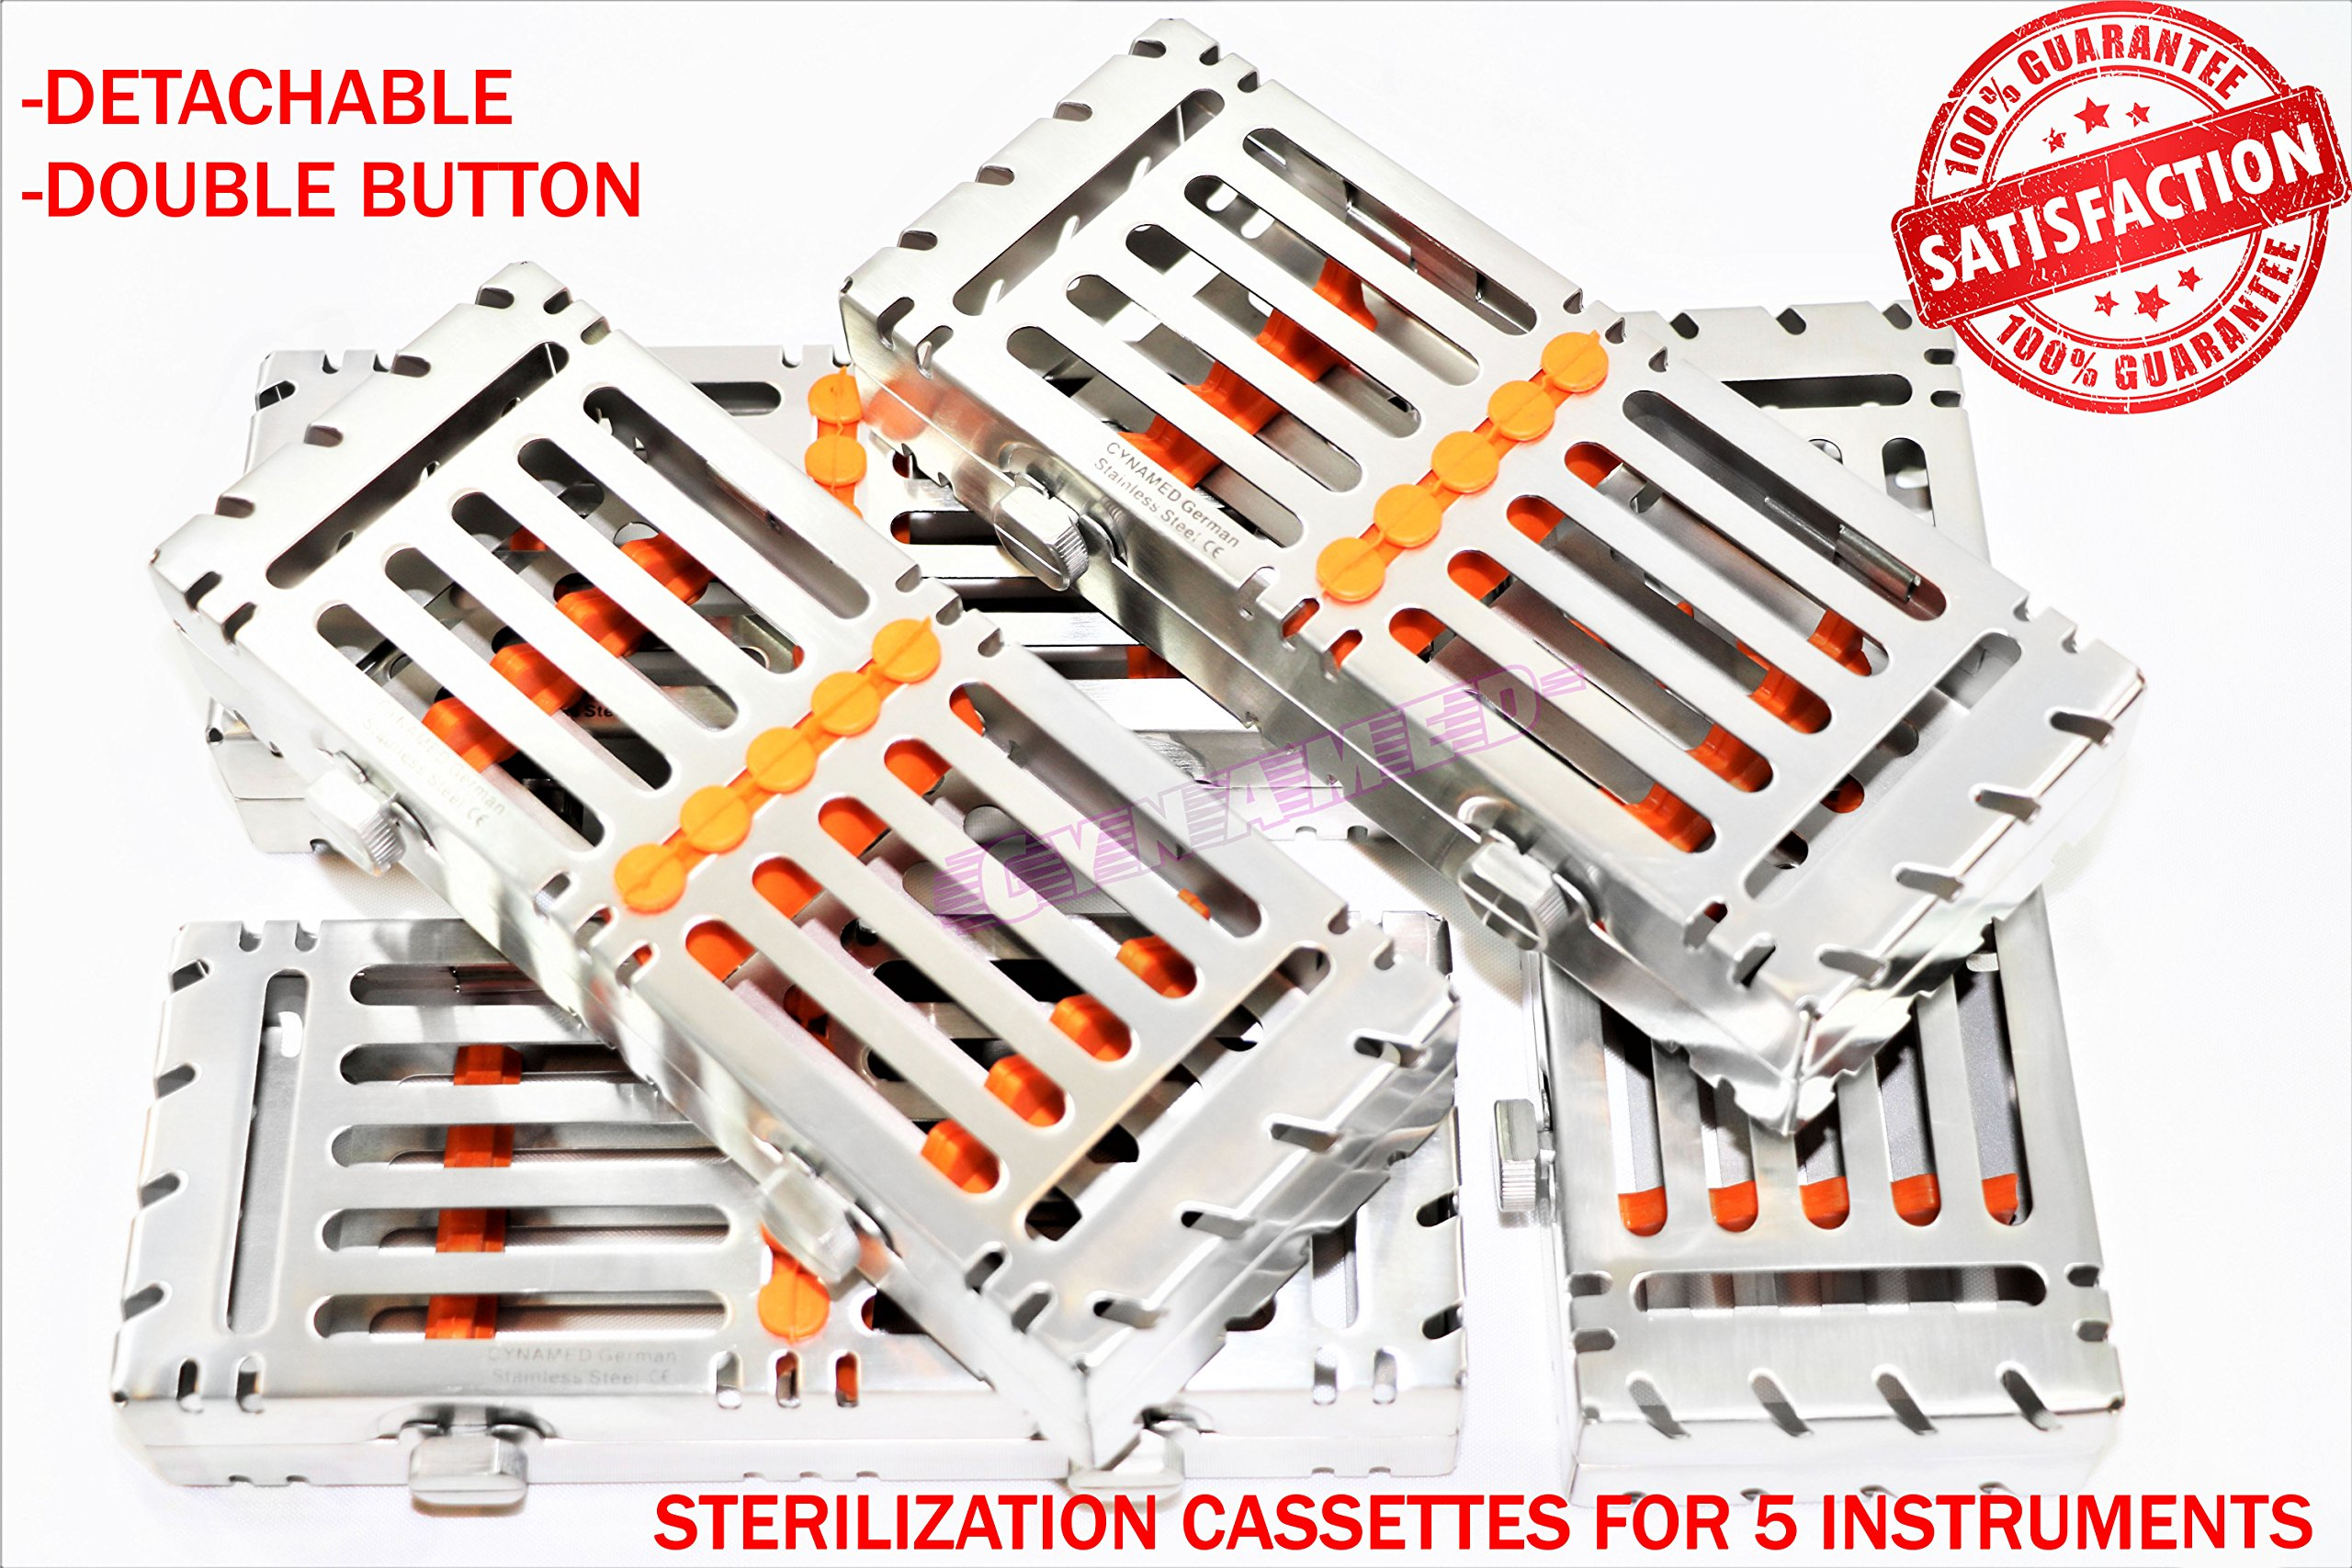 5 EA Sterilization Cassette with Double Buttons Detachable for 5 Instruments [CYNAMED]